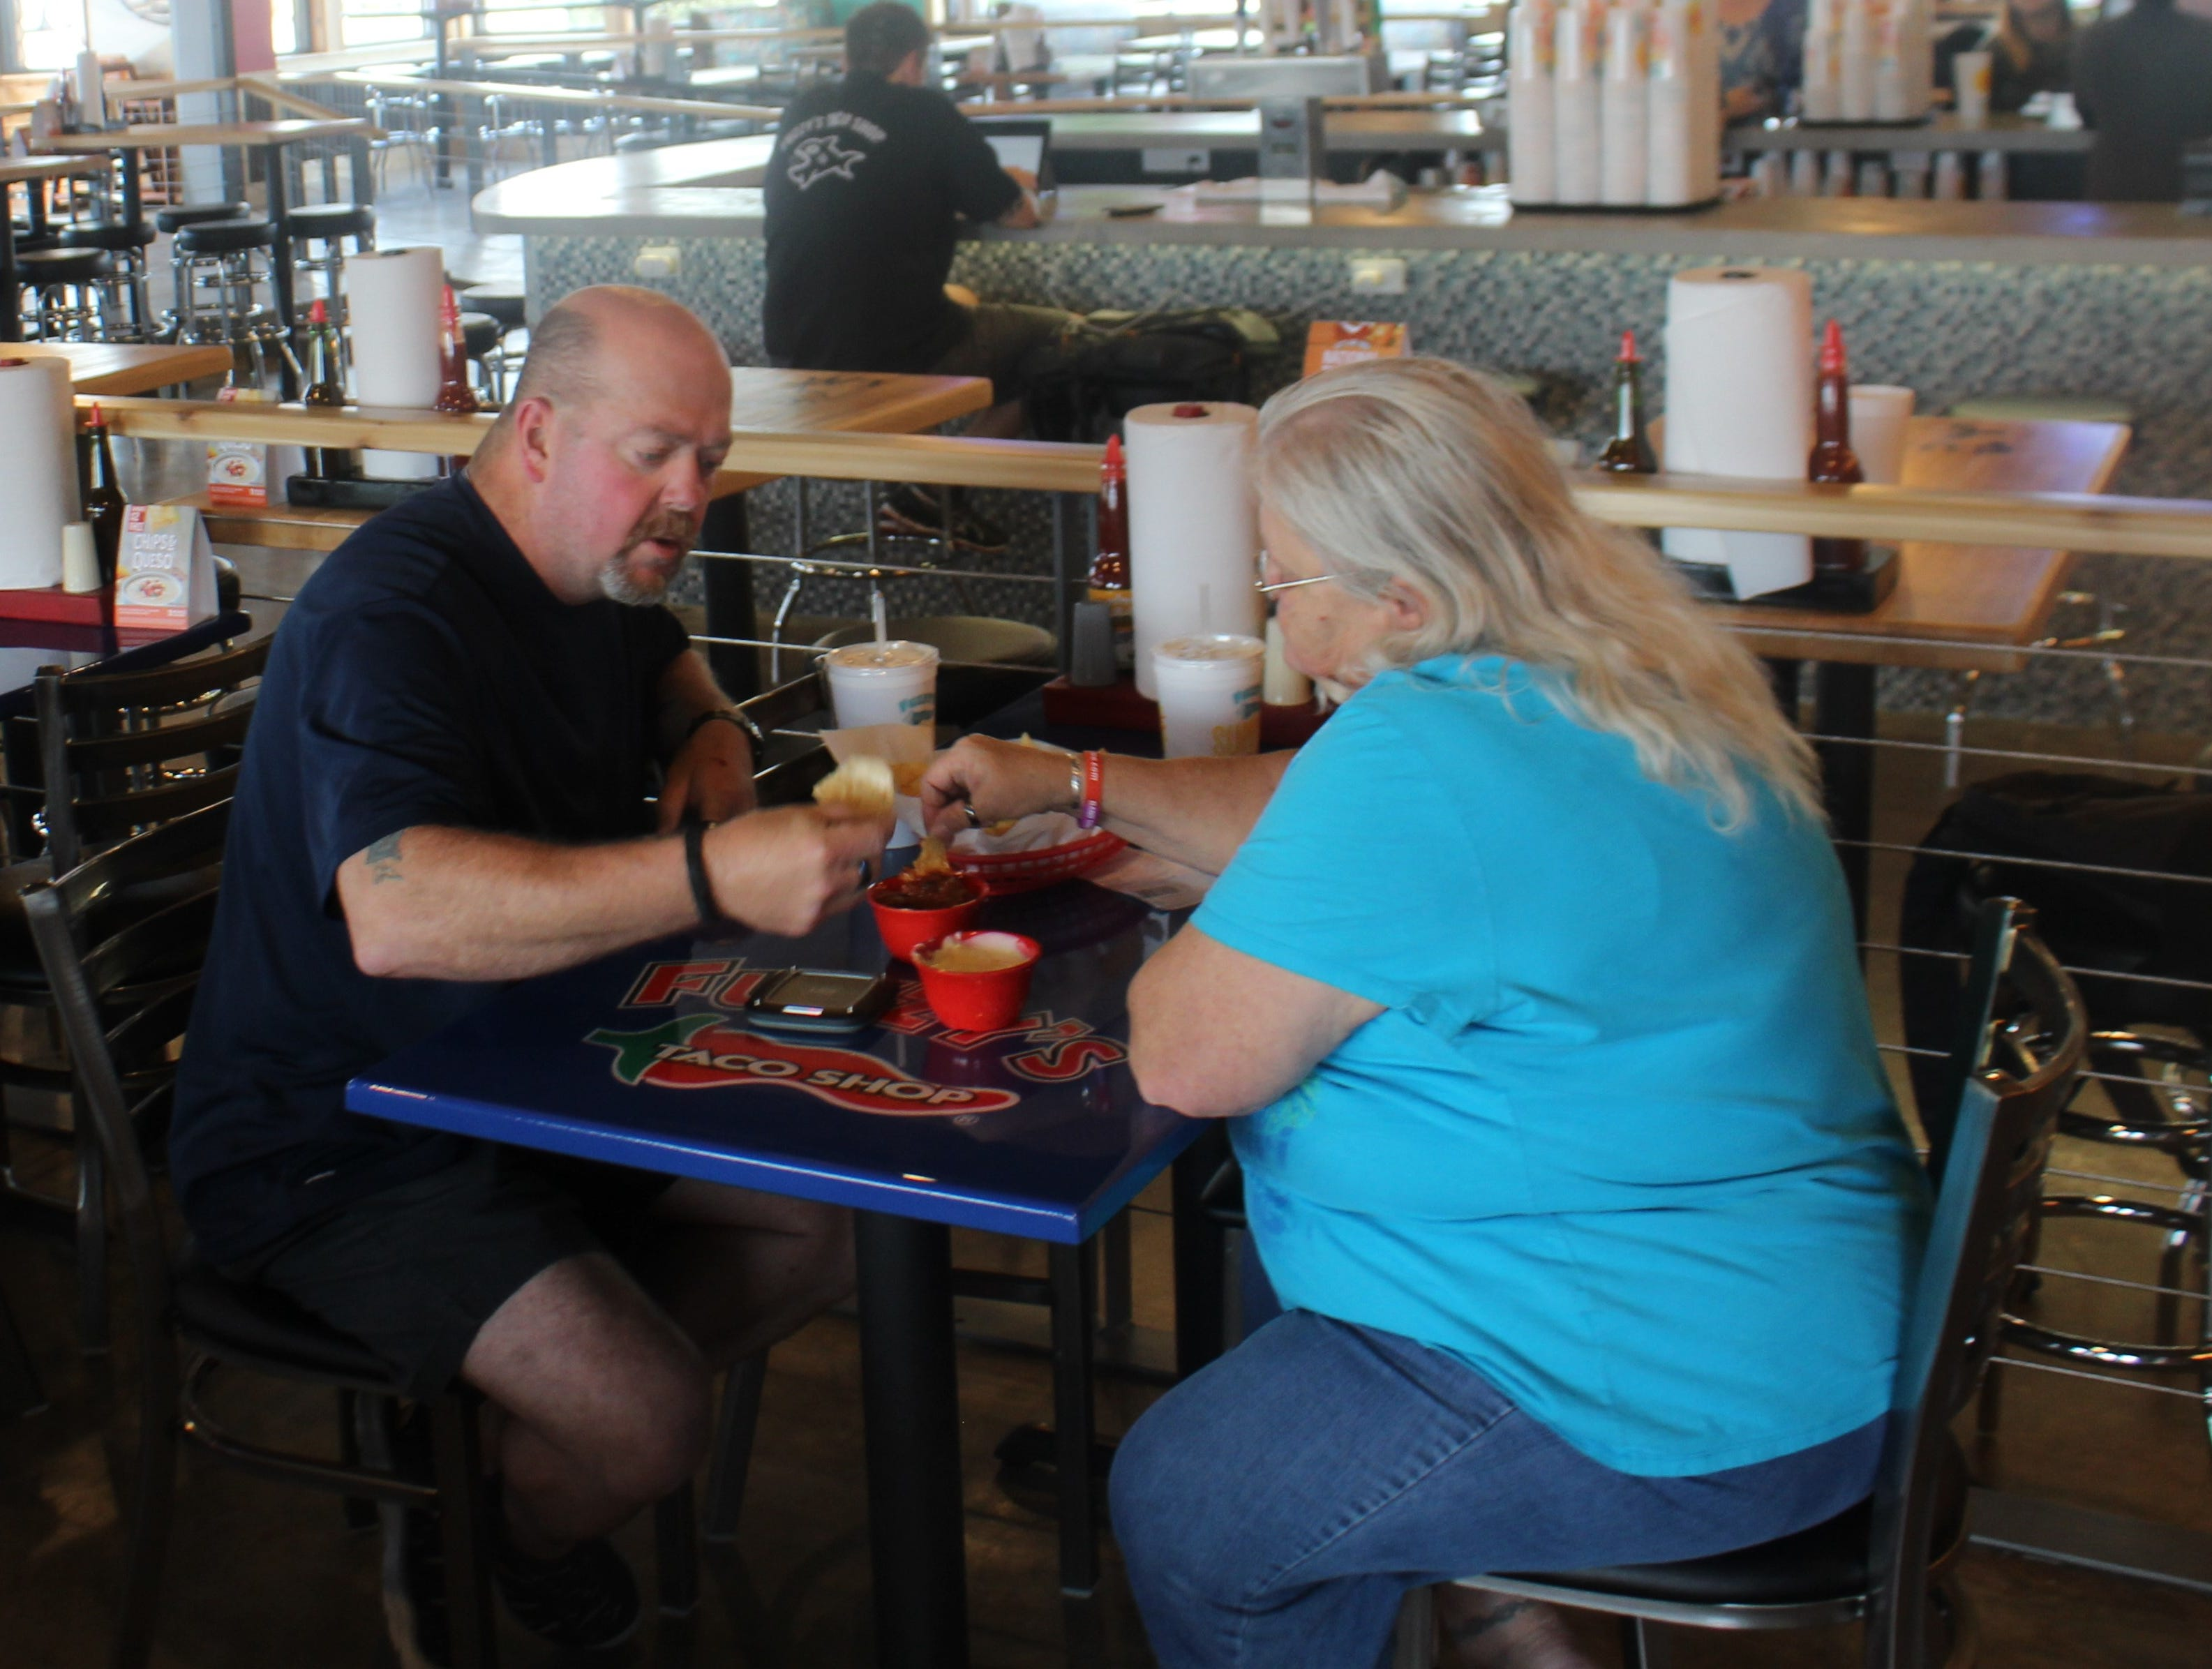 James and Debra Robertson enjoying some chips and queso Monday, Sept. 10, 2018 at Fuzzy's Taco Shop, 4333 Sherwood Way.